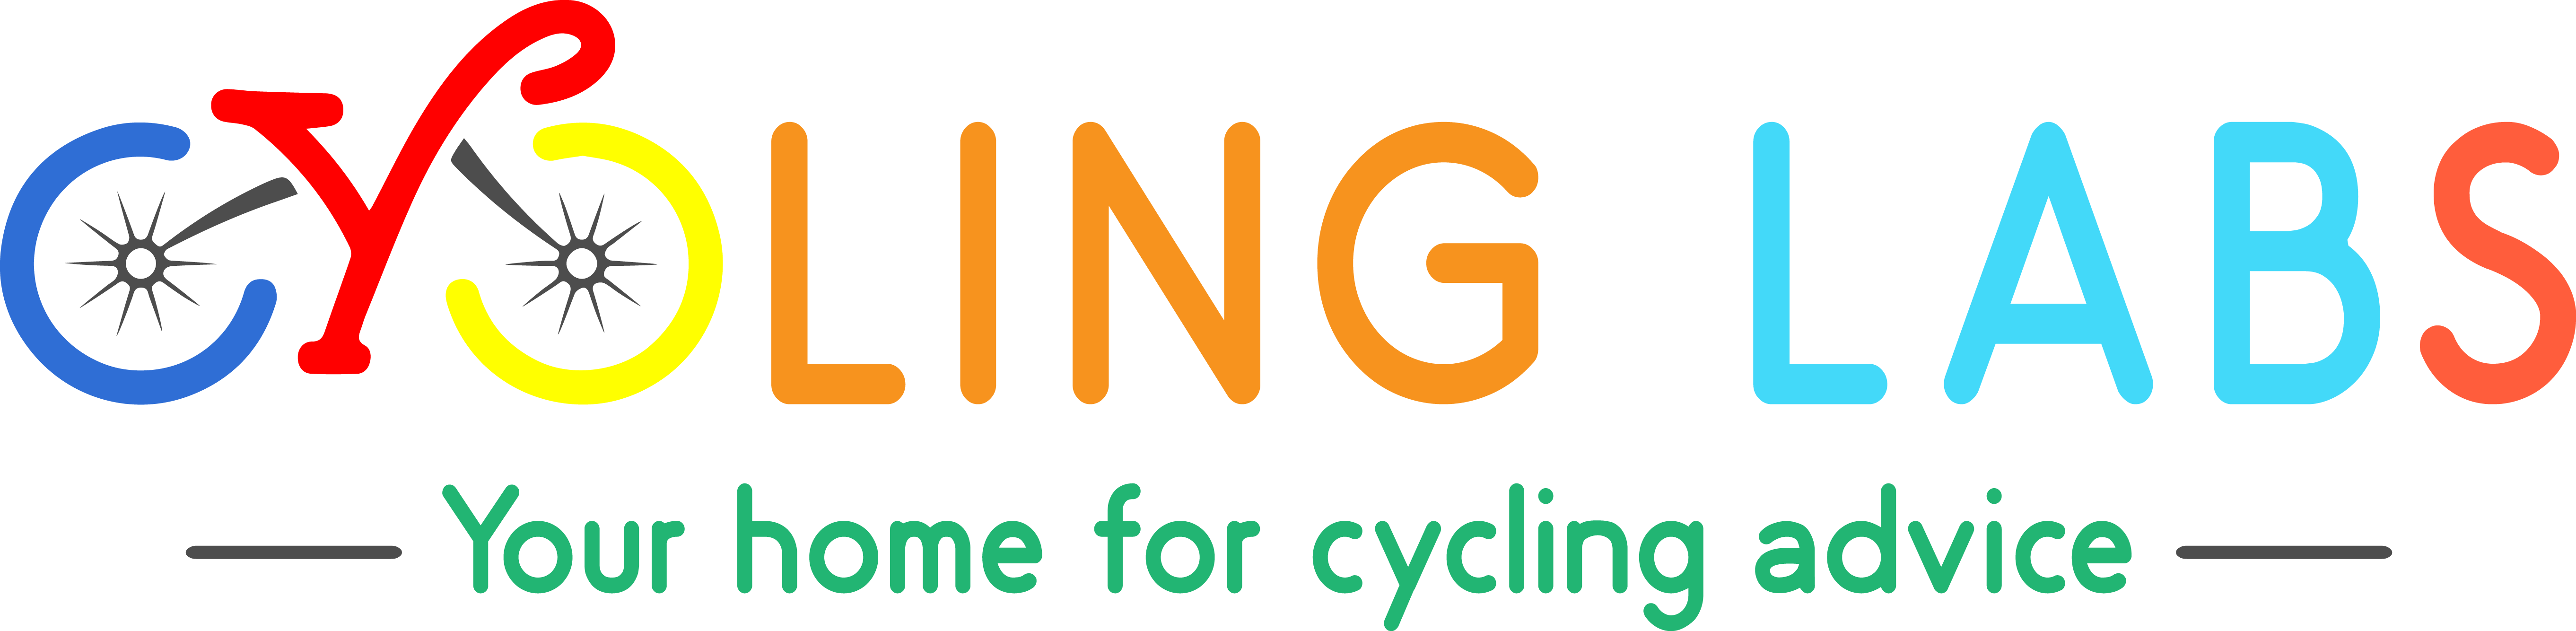 Cycling Labs